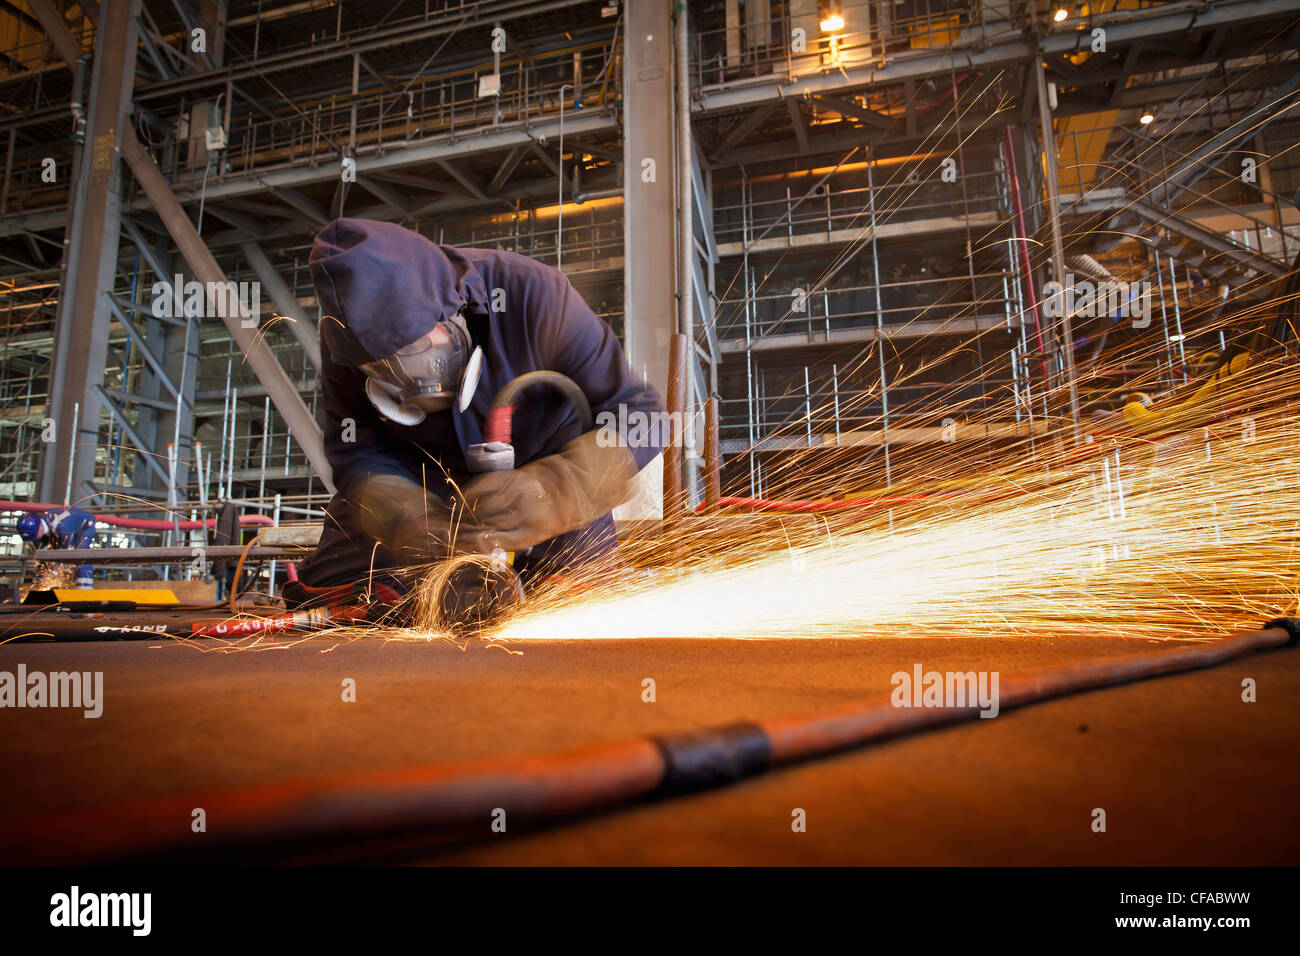 Steel forge photos steel forge images alamy - Coup de foudre au travail ...